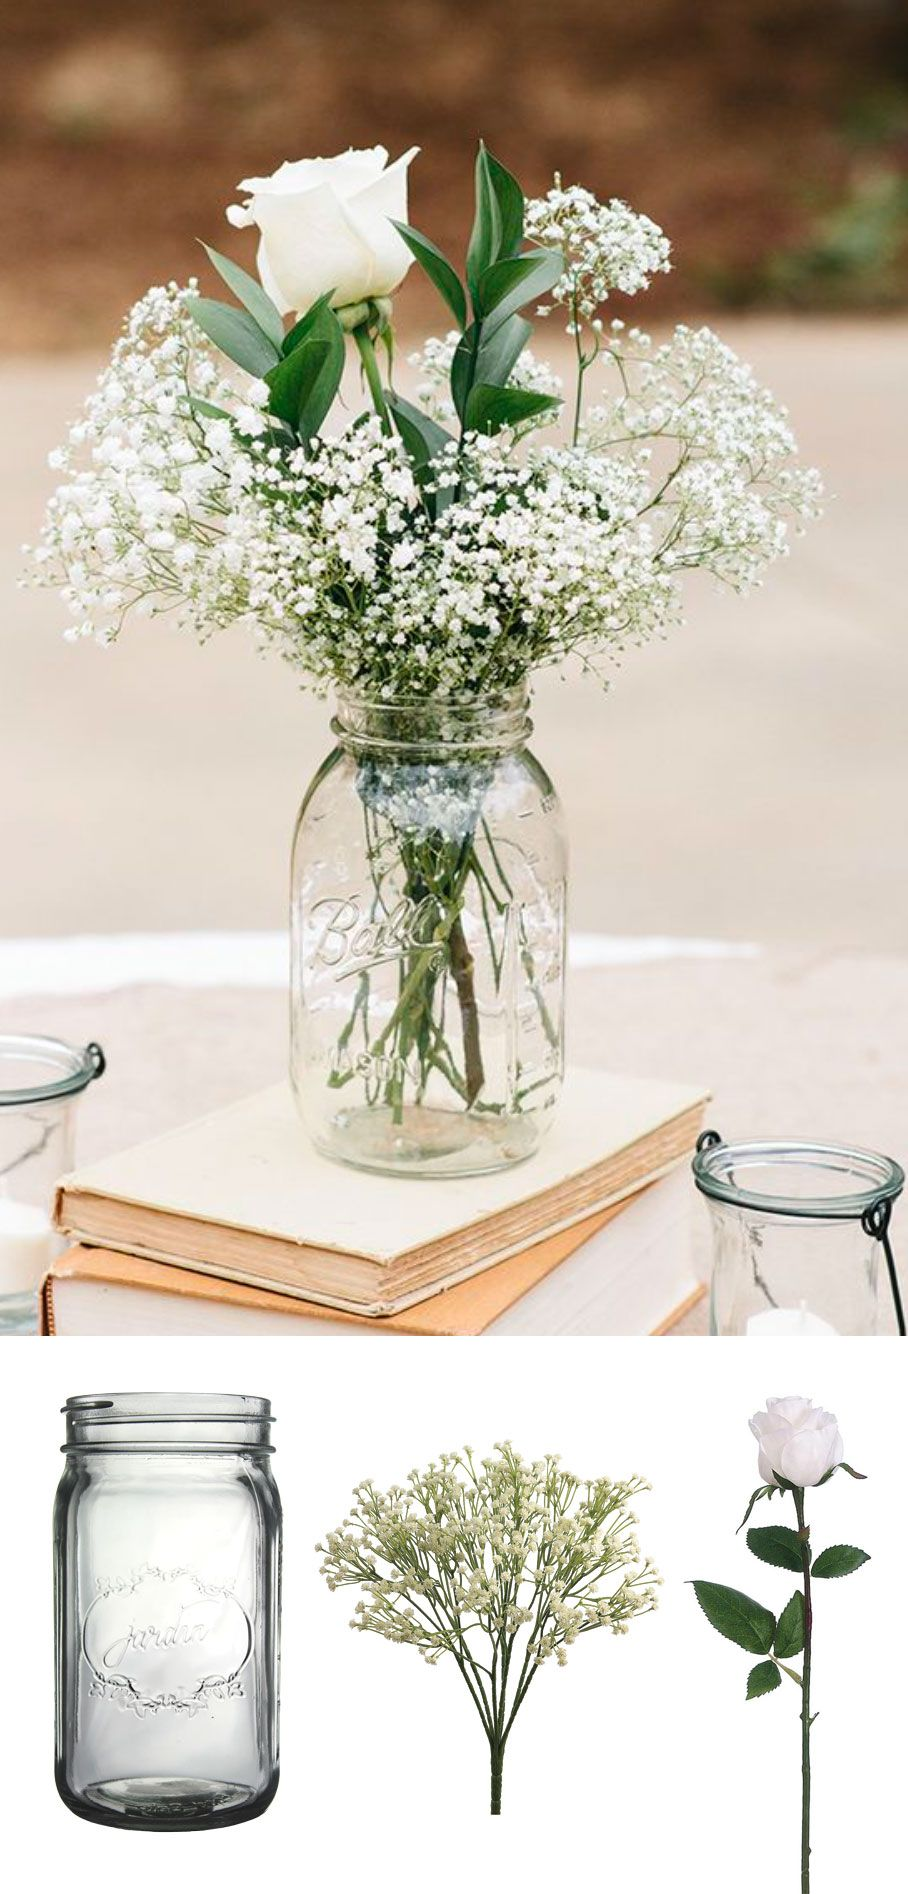 Turn your favorite fresh flower inspiration into a longlasting faux